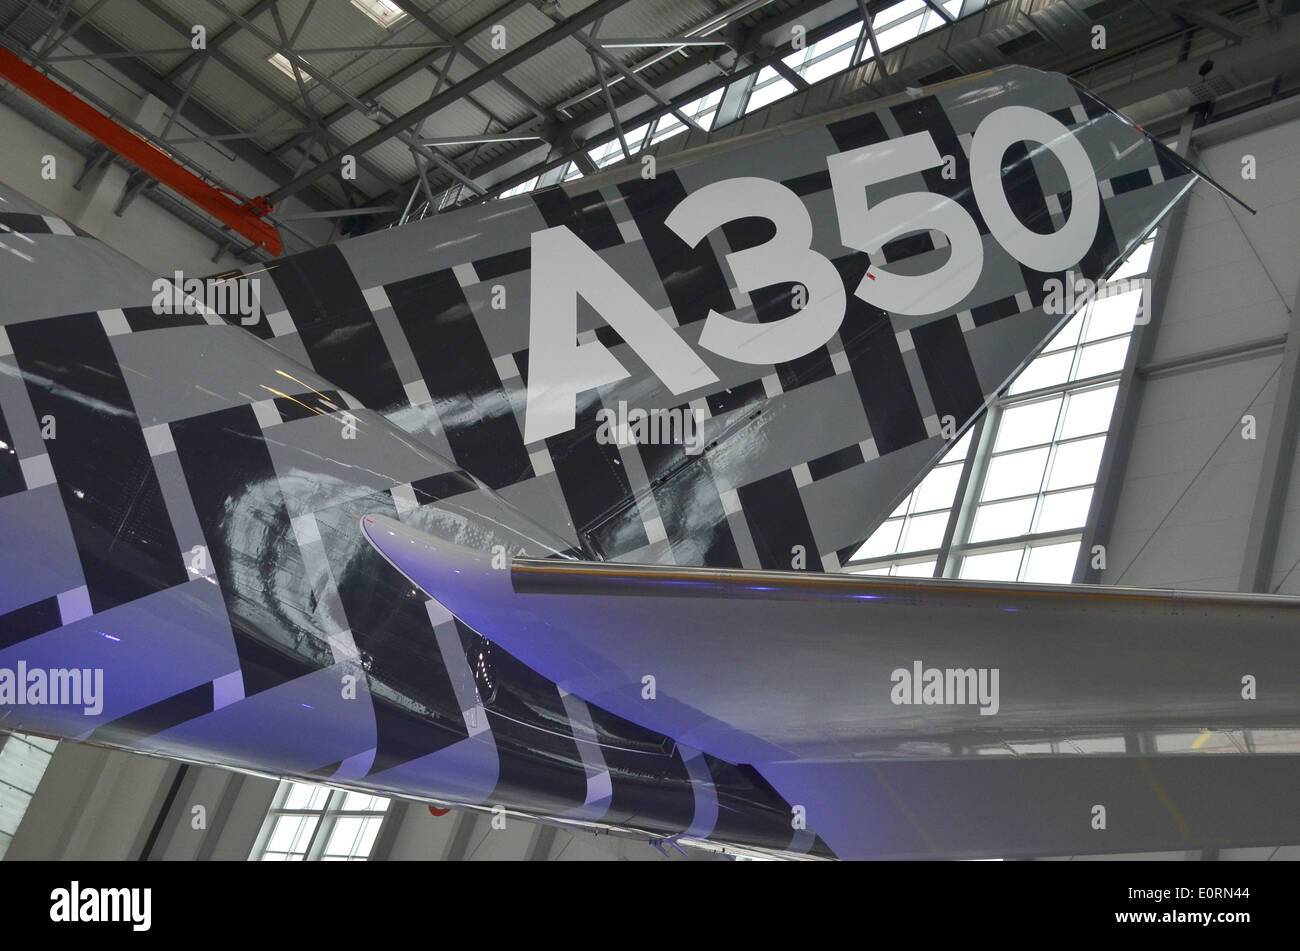 Tailfin of an Airbus A350XWB at the Airbus headquarters in Finkenwerder, Hamburg, Germany Stock Photo